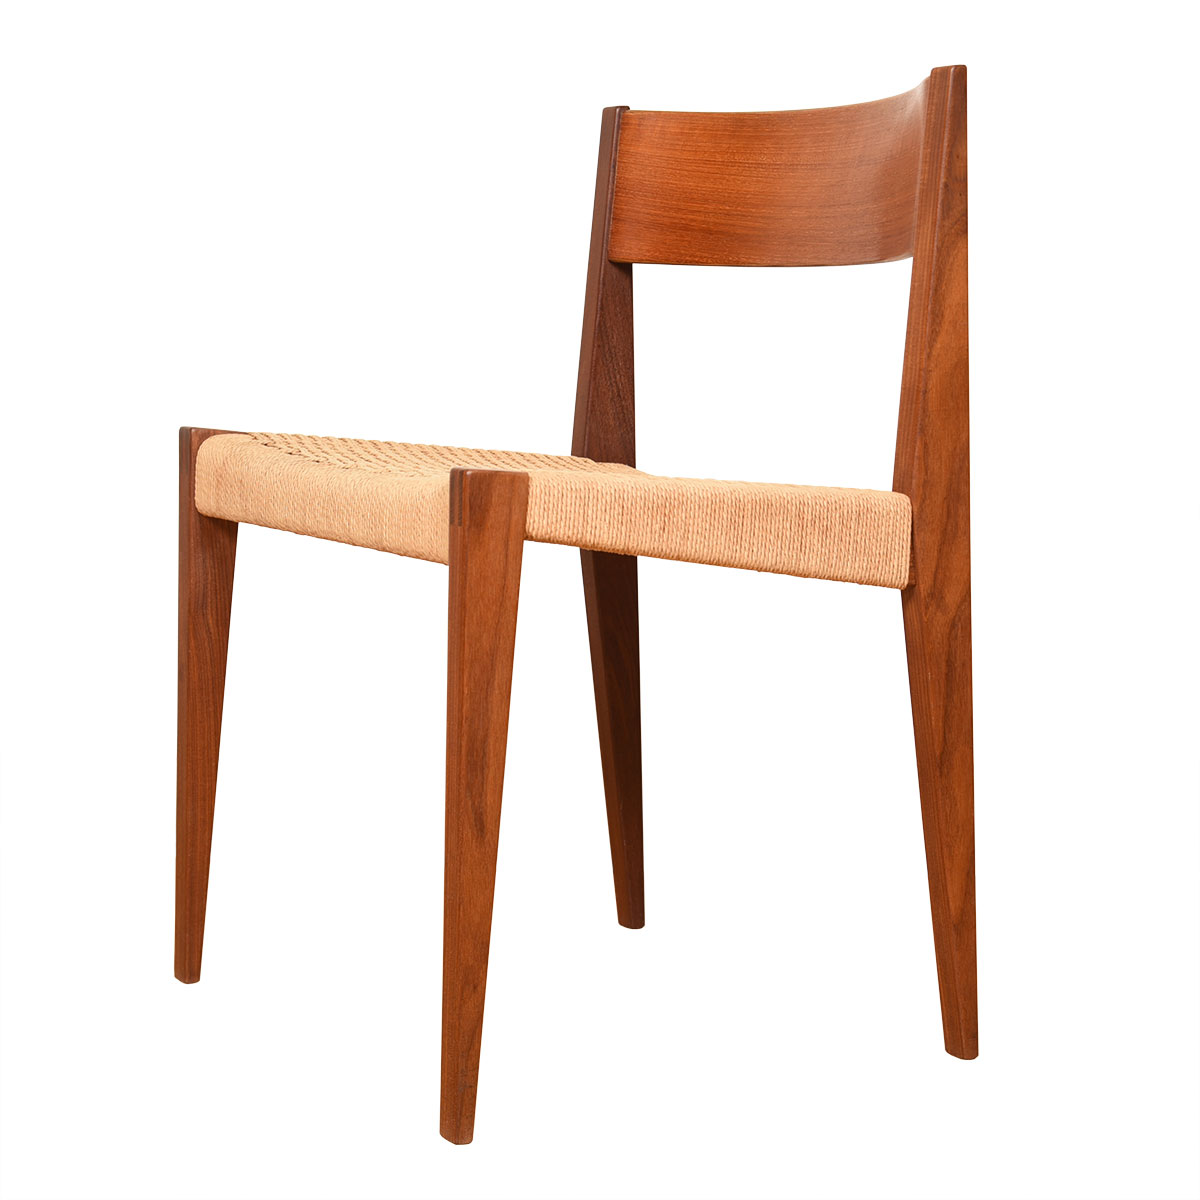 Poul Cadovius Danish Modern Cord & Teak Single Accent Chair